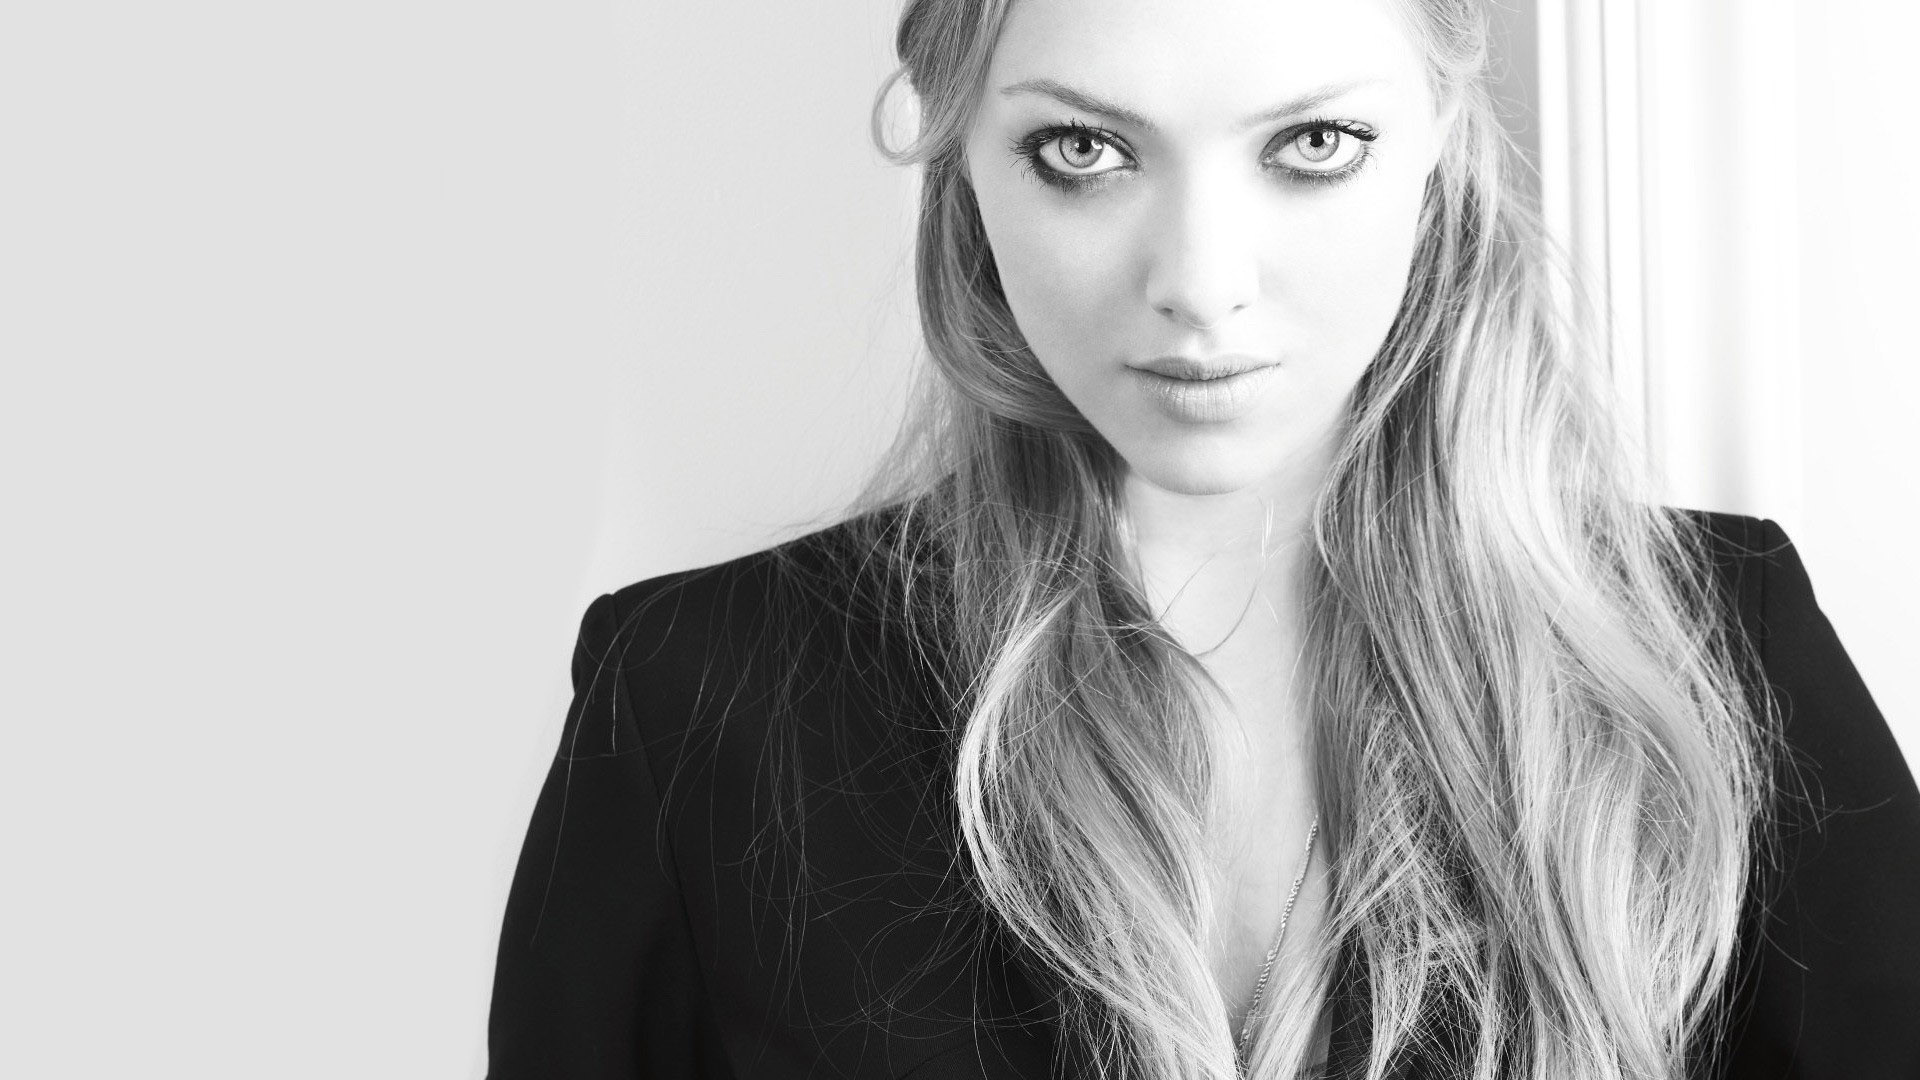 monochrome amanda seyfried wallpaper 50603